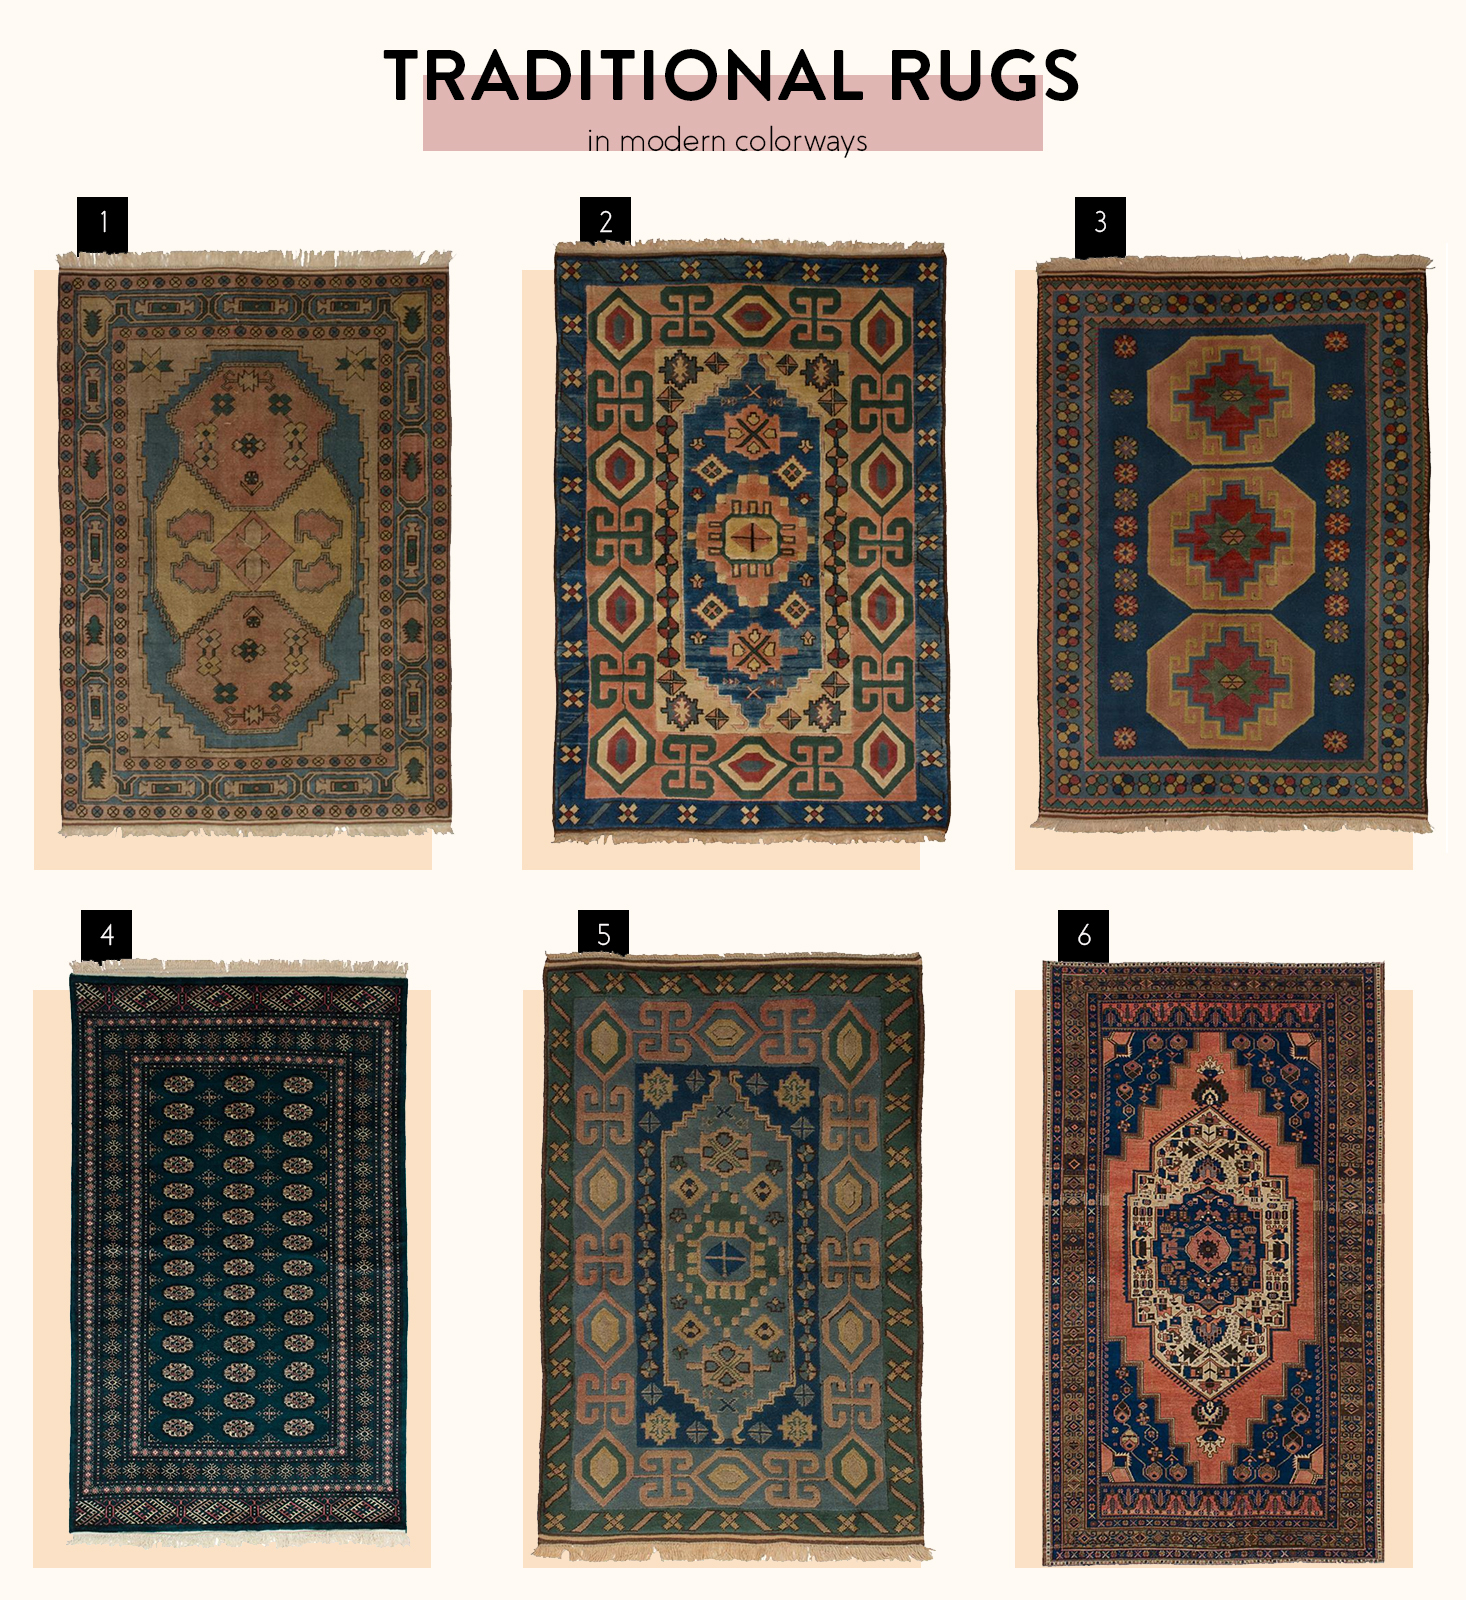 6 Traditional Rugs in Modern Colors